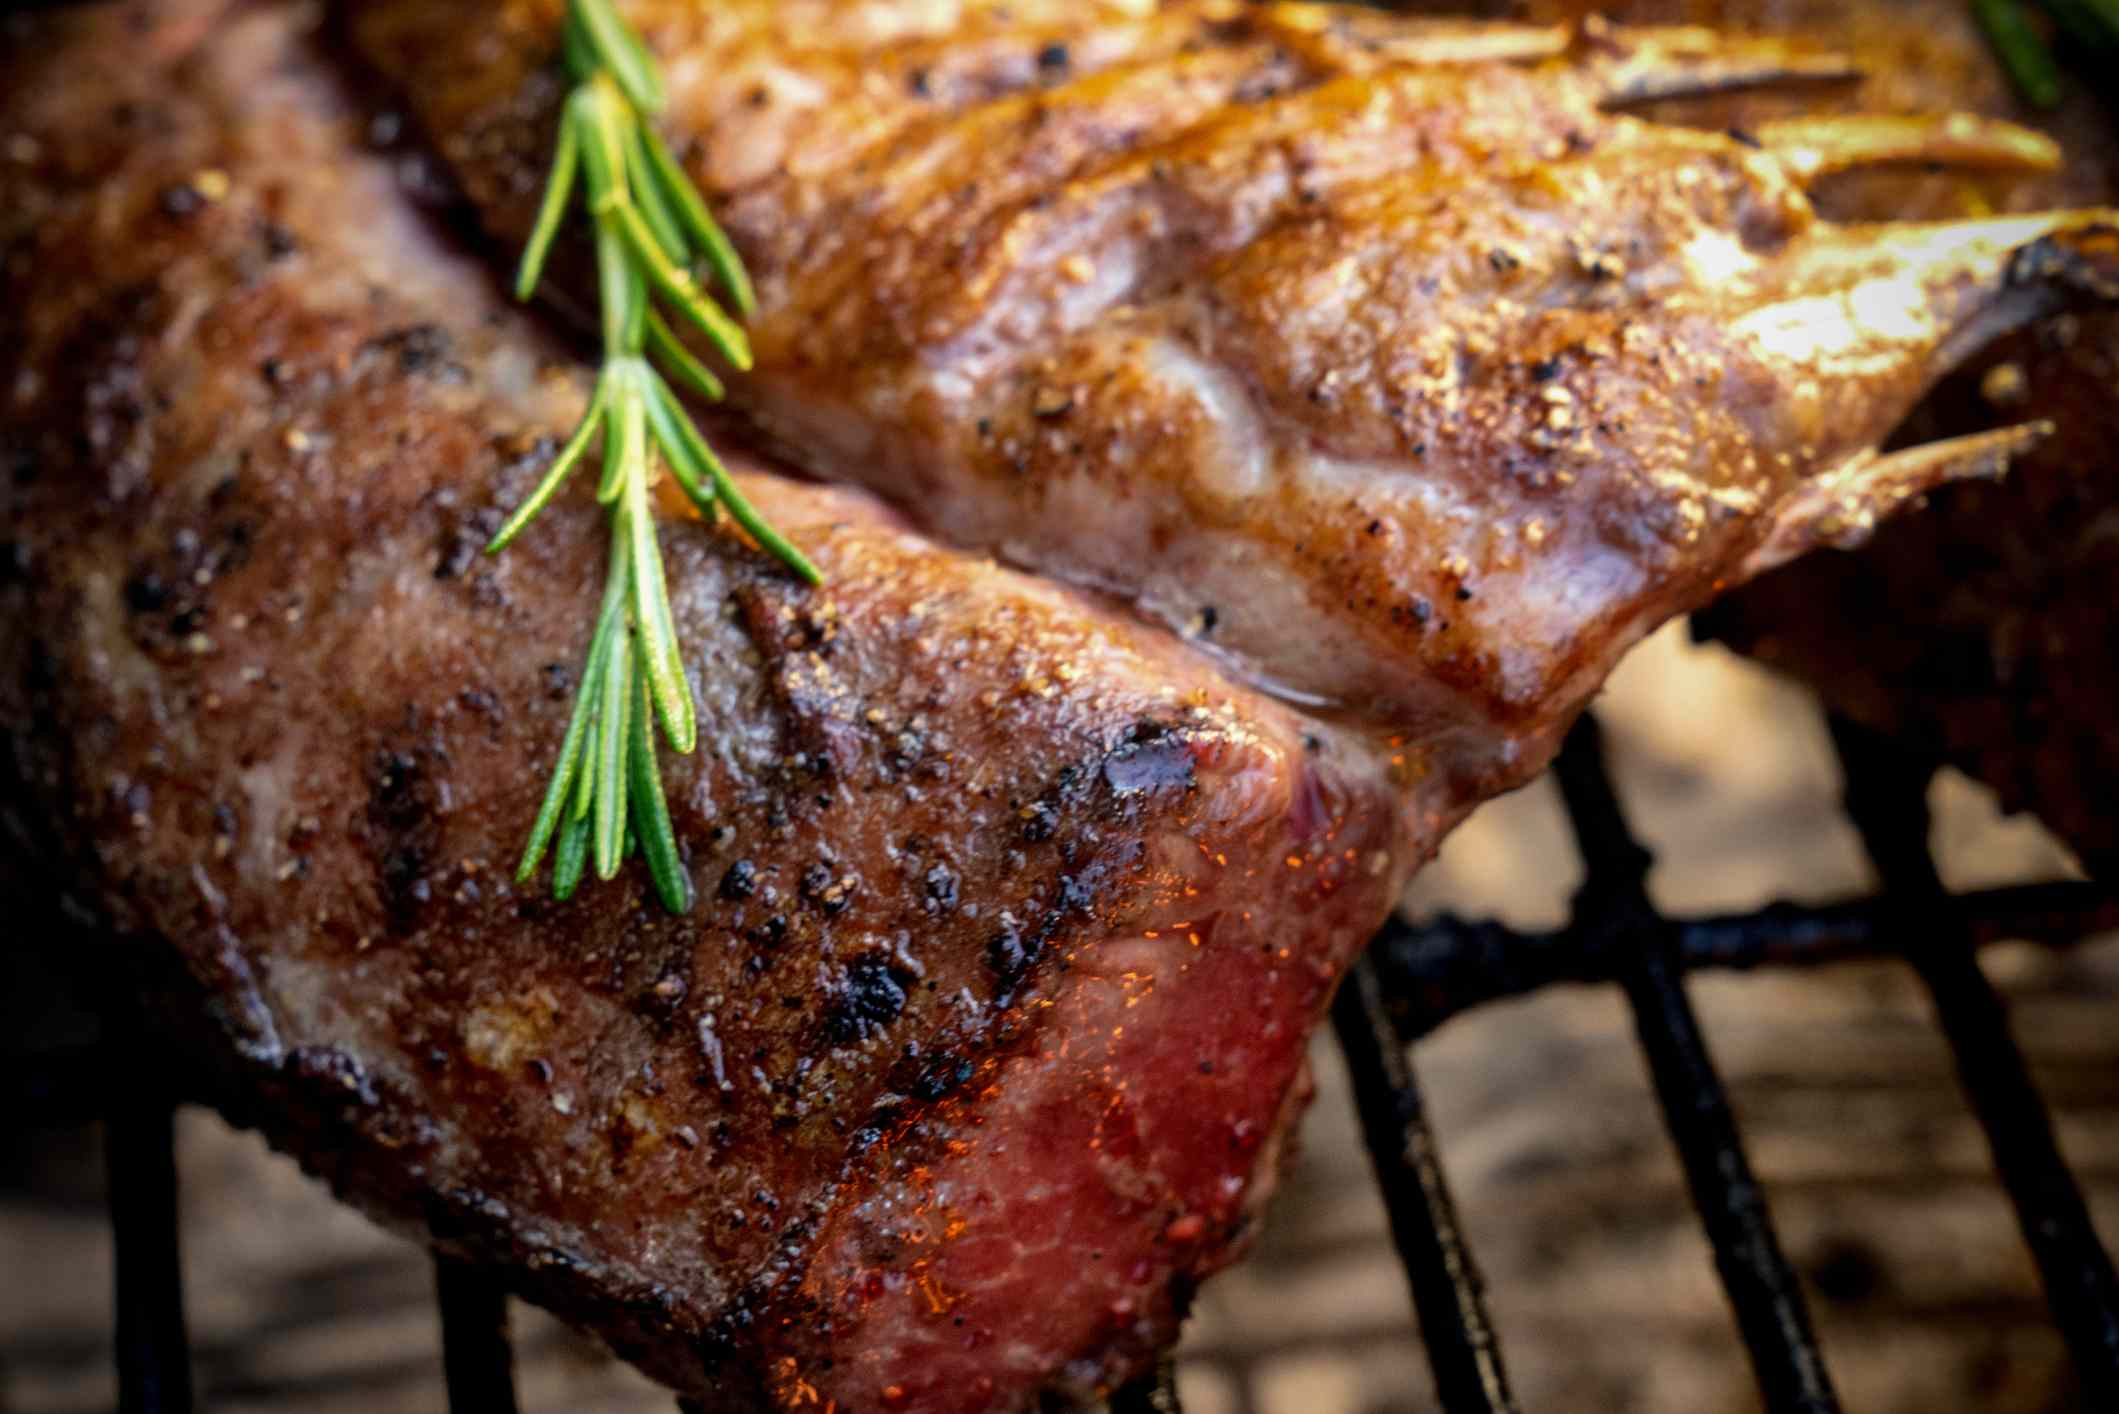 Lamb chops grilling with herbs